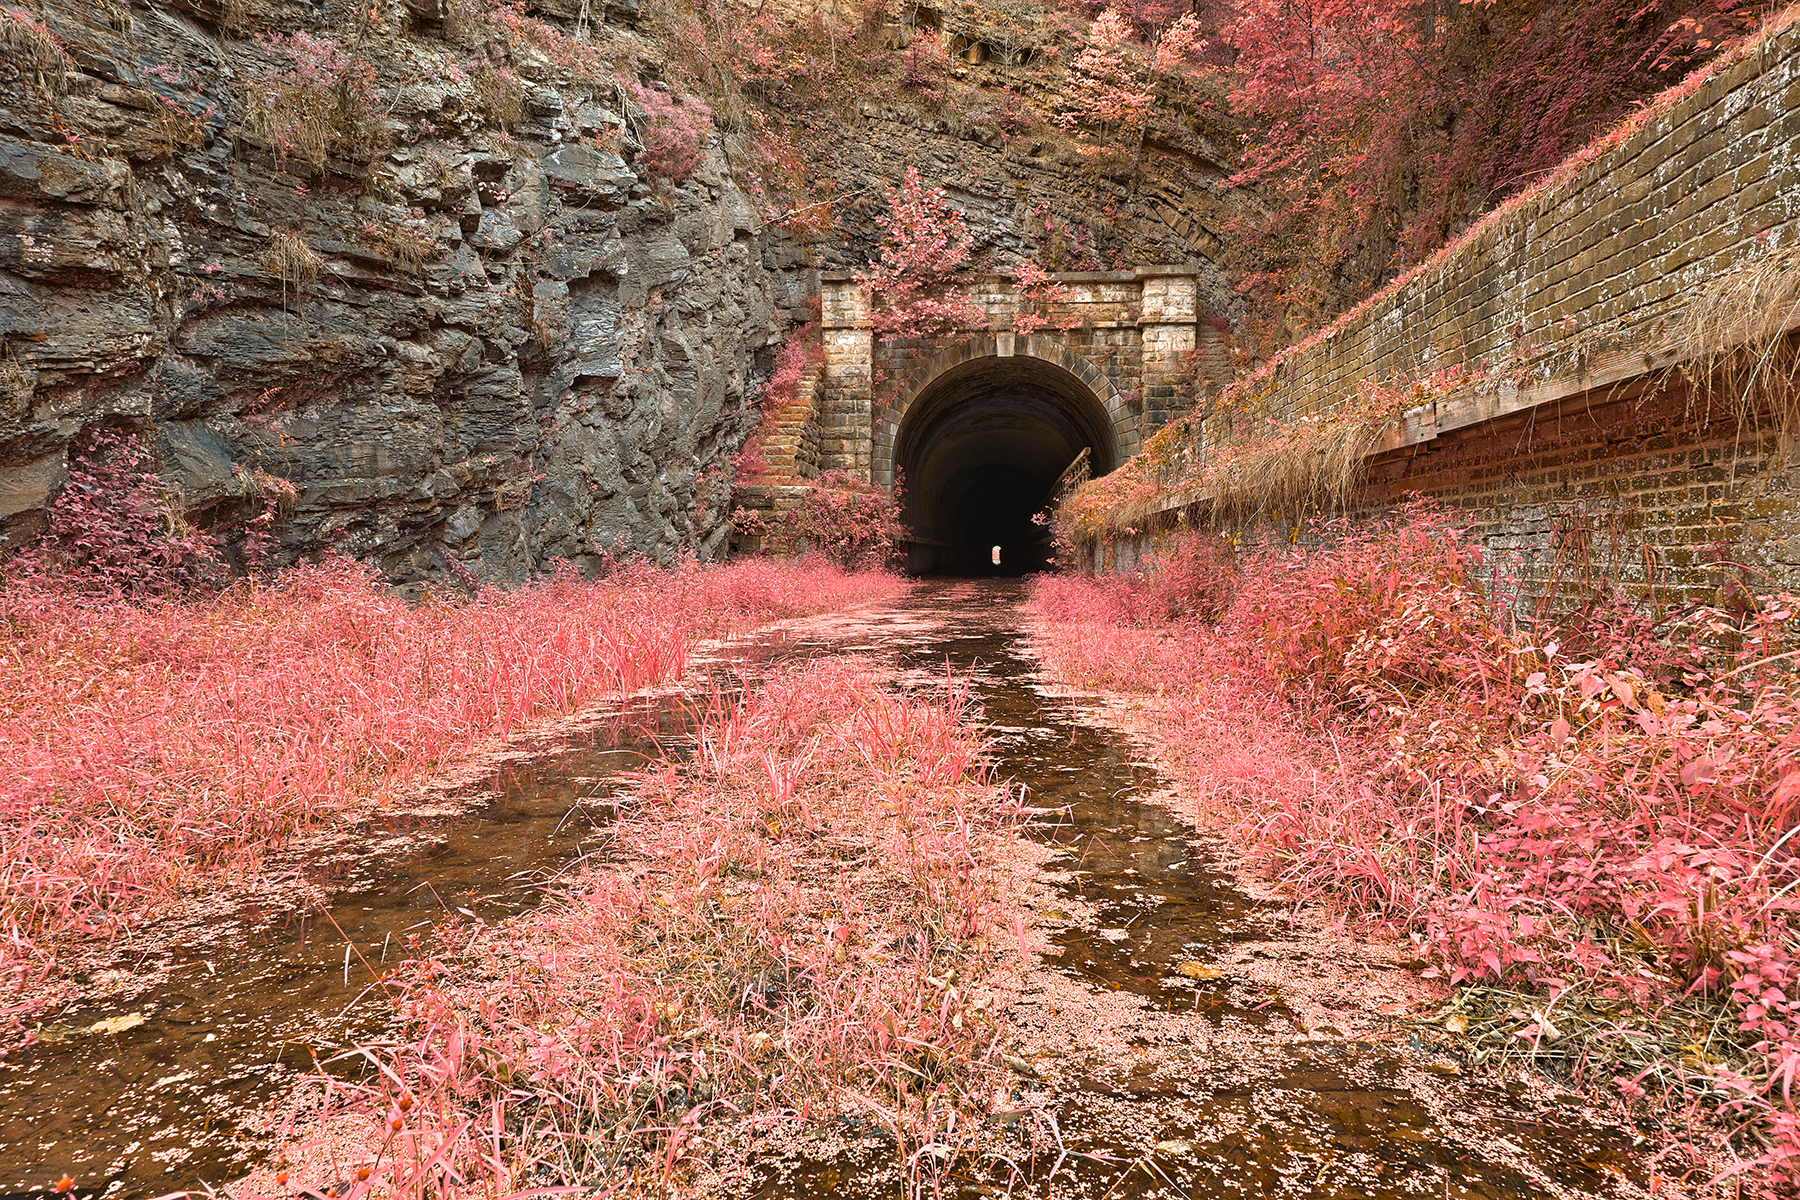 Paw paw tunnel - pink netherworld hdr photo